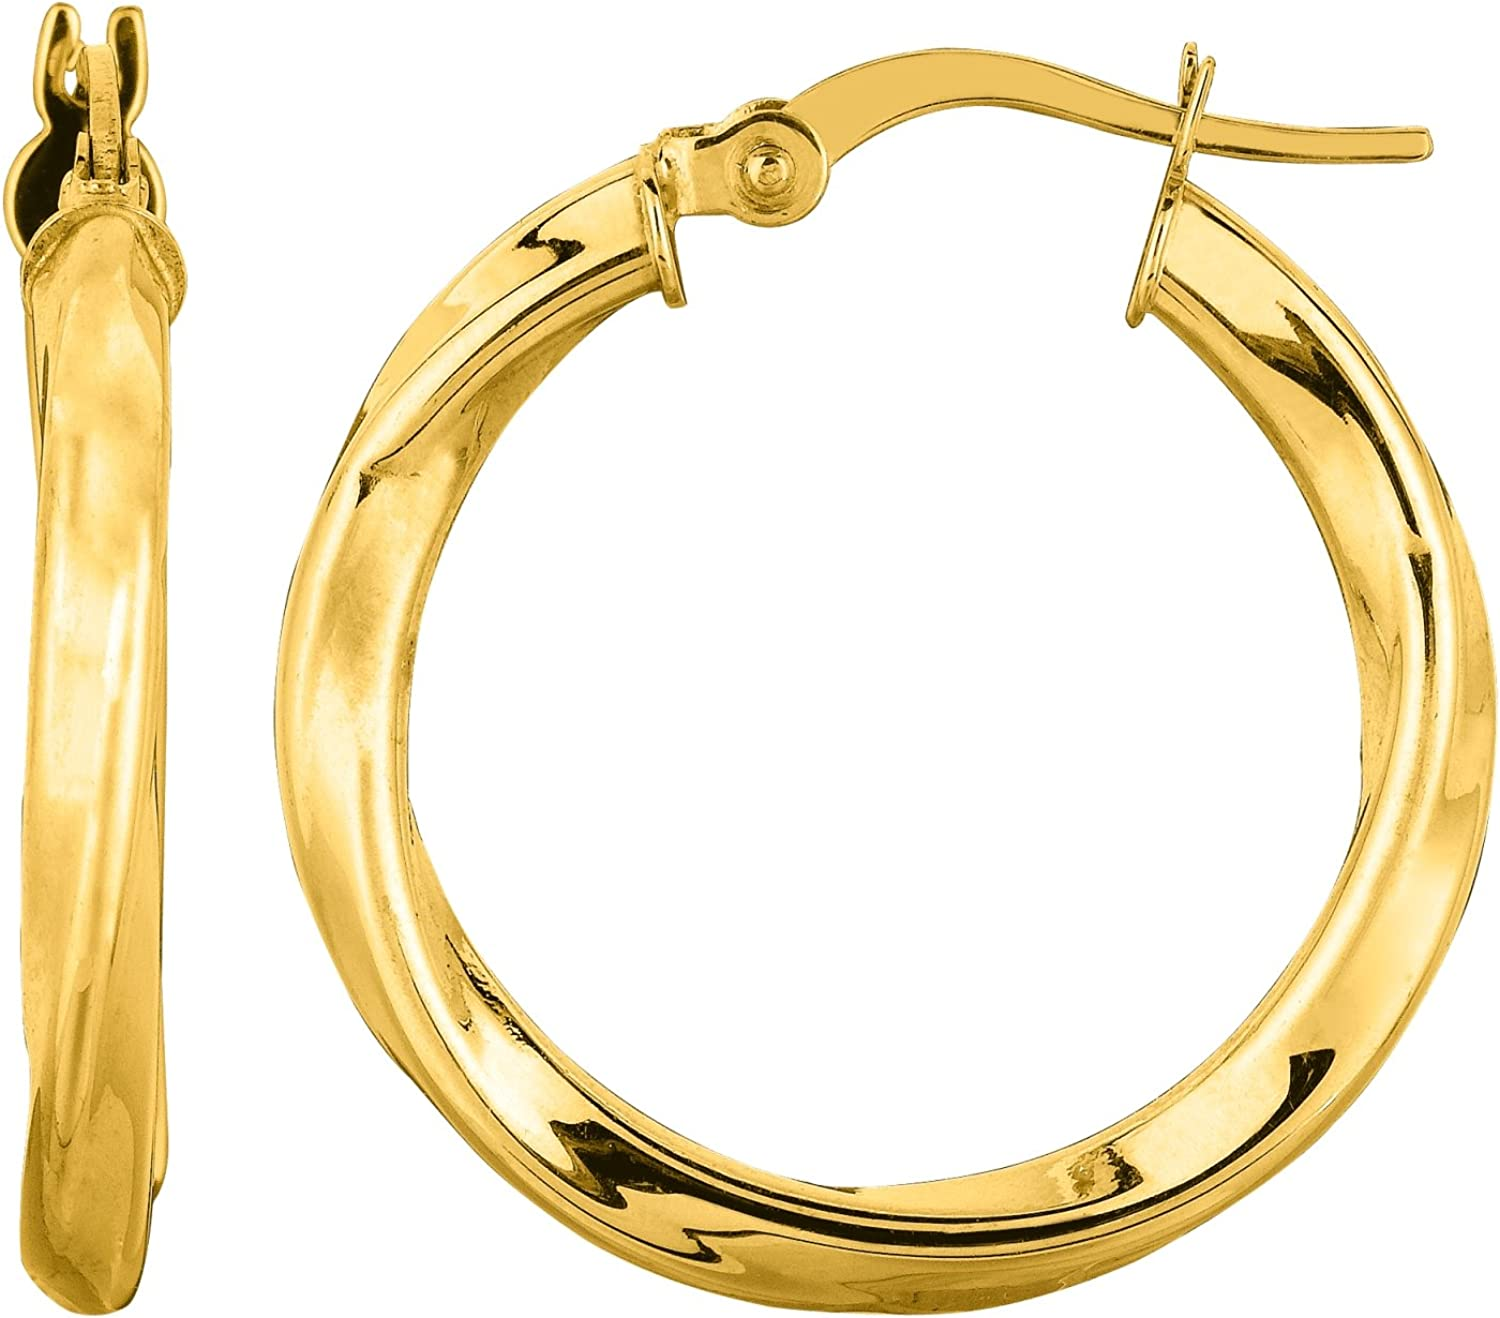 20mm 14k Yellow Gold 2mm Thick Round Tube Hoop Earrings High Polished,